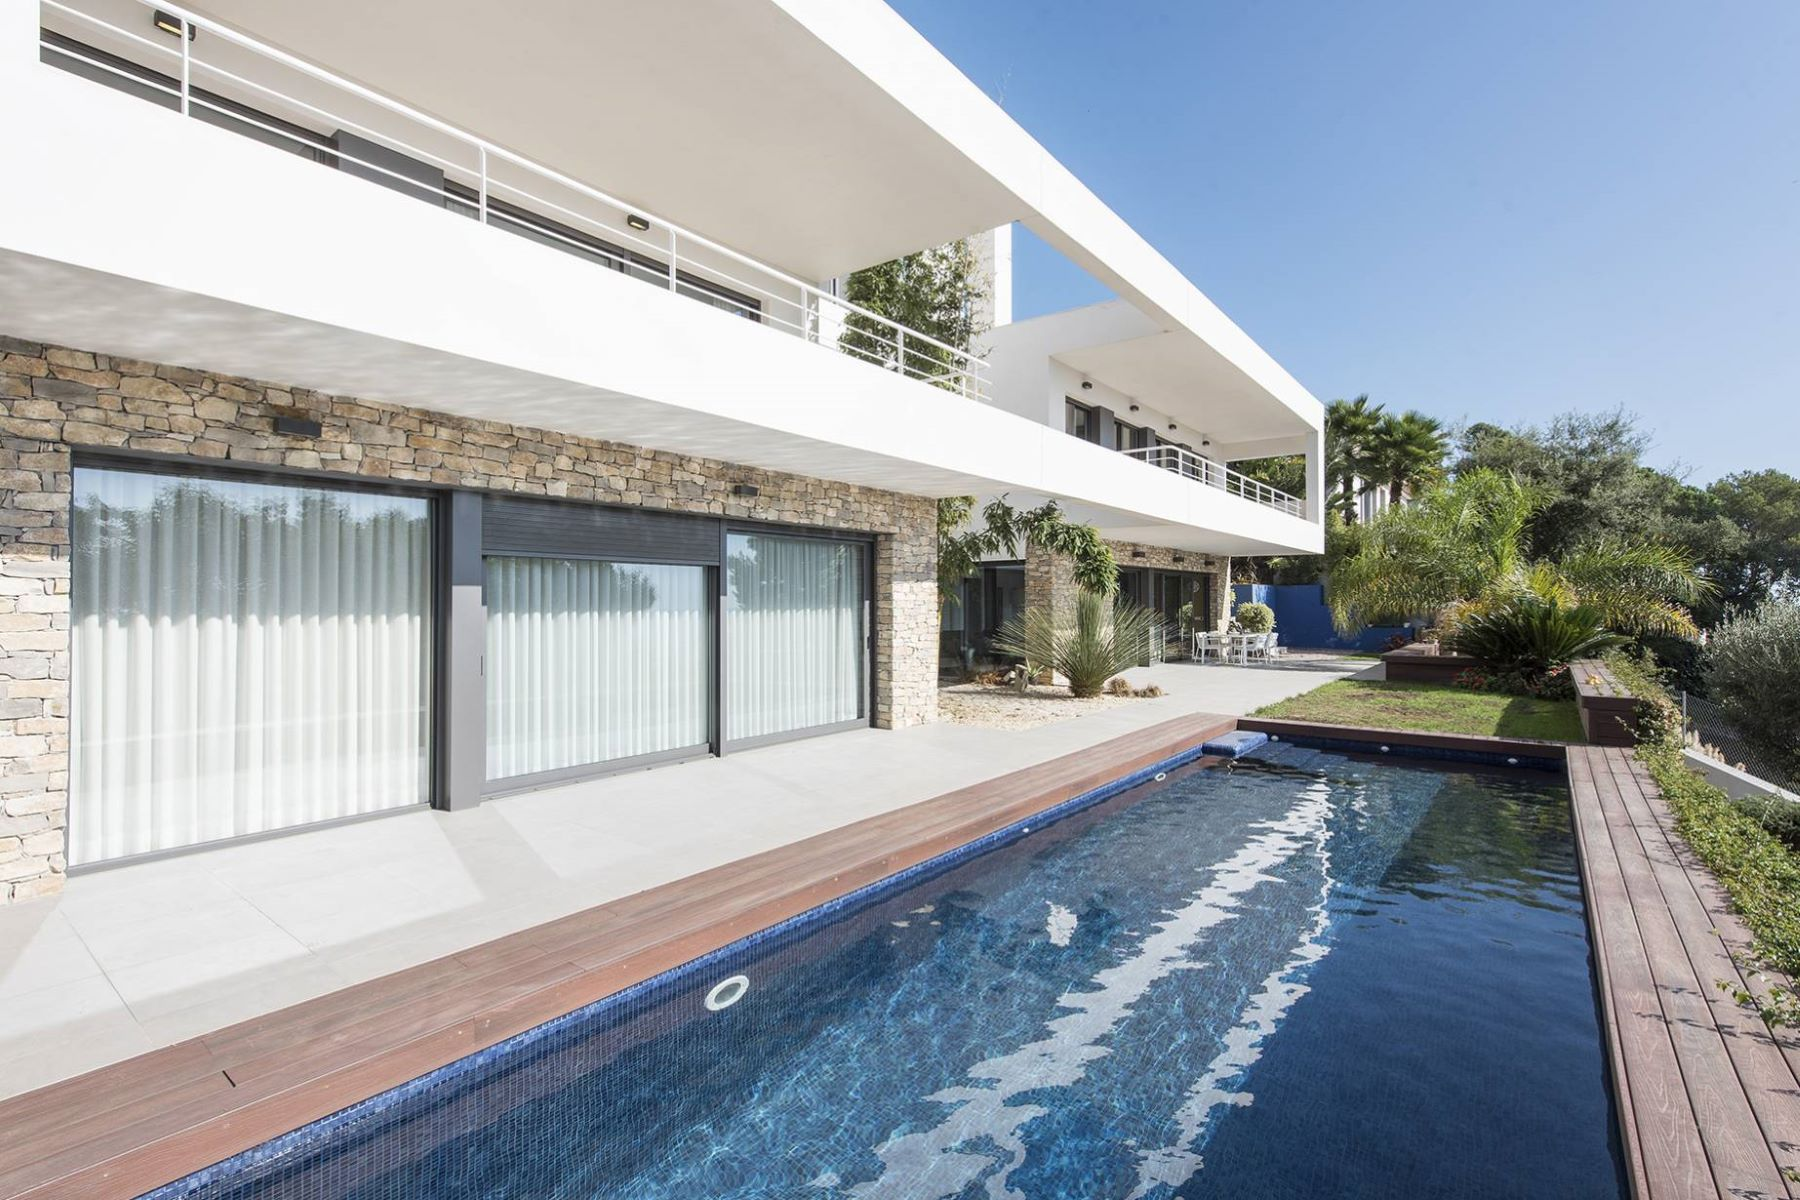 Single Family Homes for Sale at Designer villa overlooking the sea in one of the most prestigious locations Other Spain, Other Areas In Spain 17300 Spain